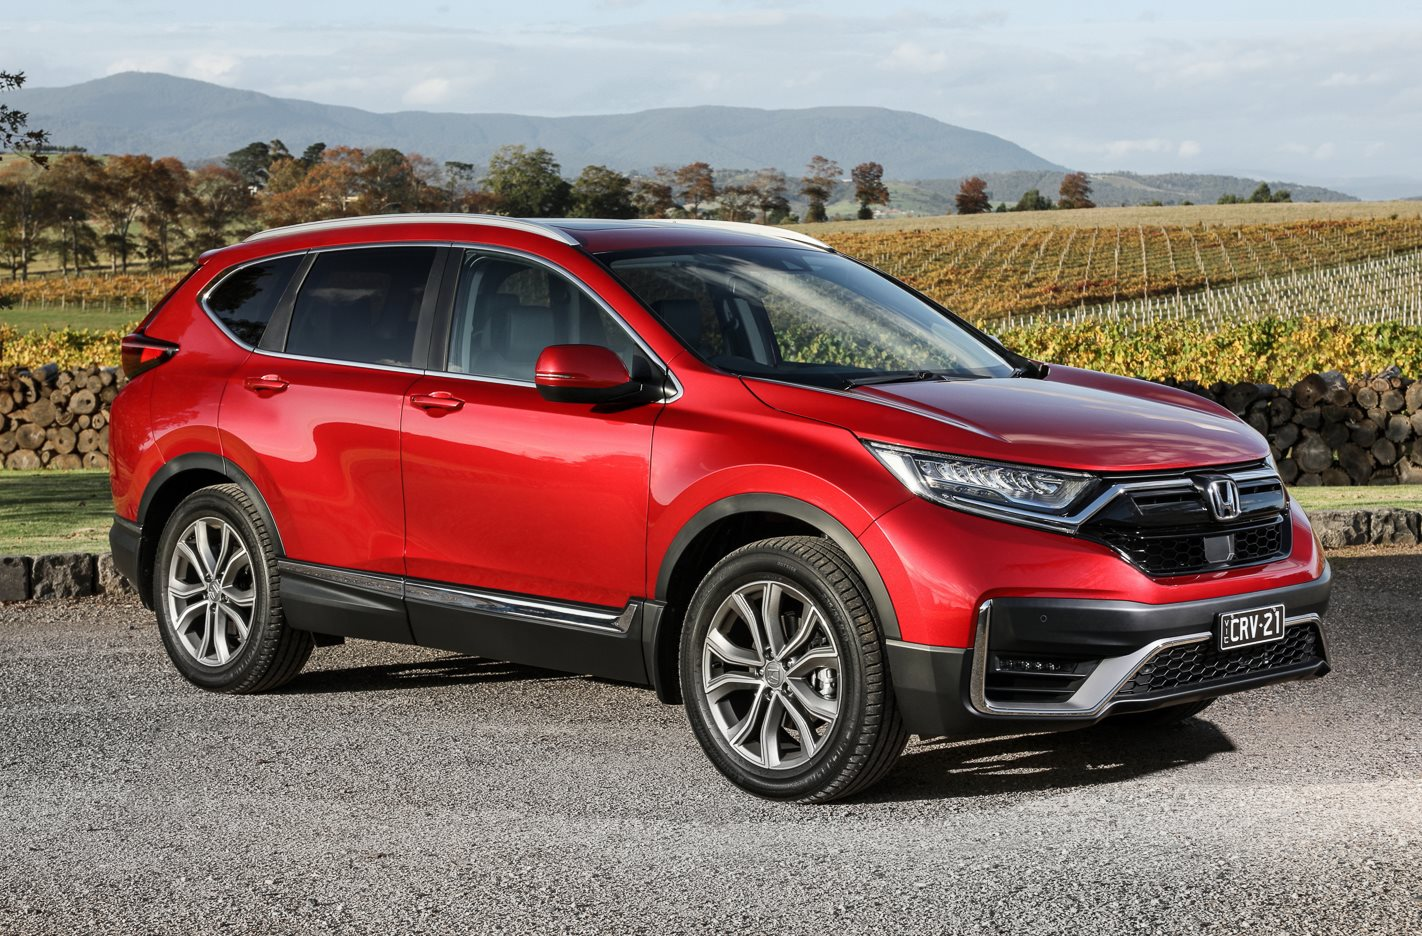 2021 honda cr-v pricing and specification